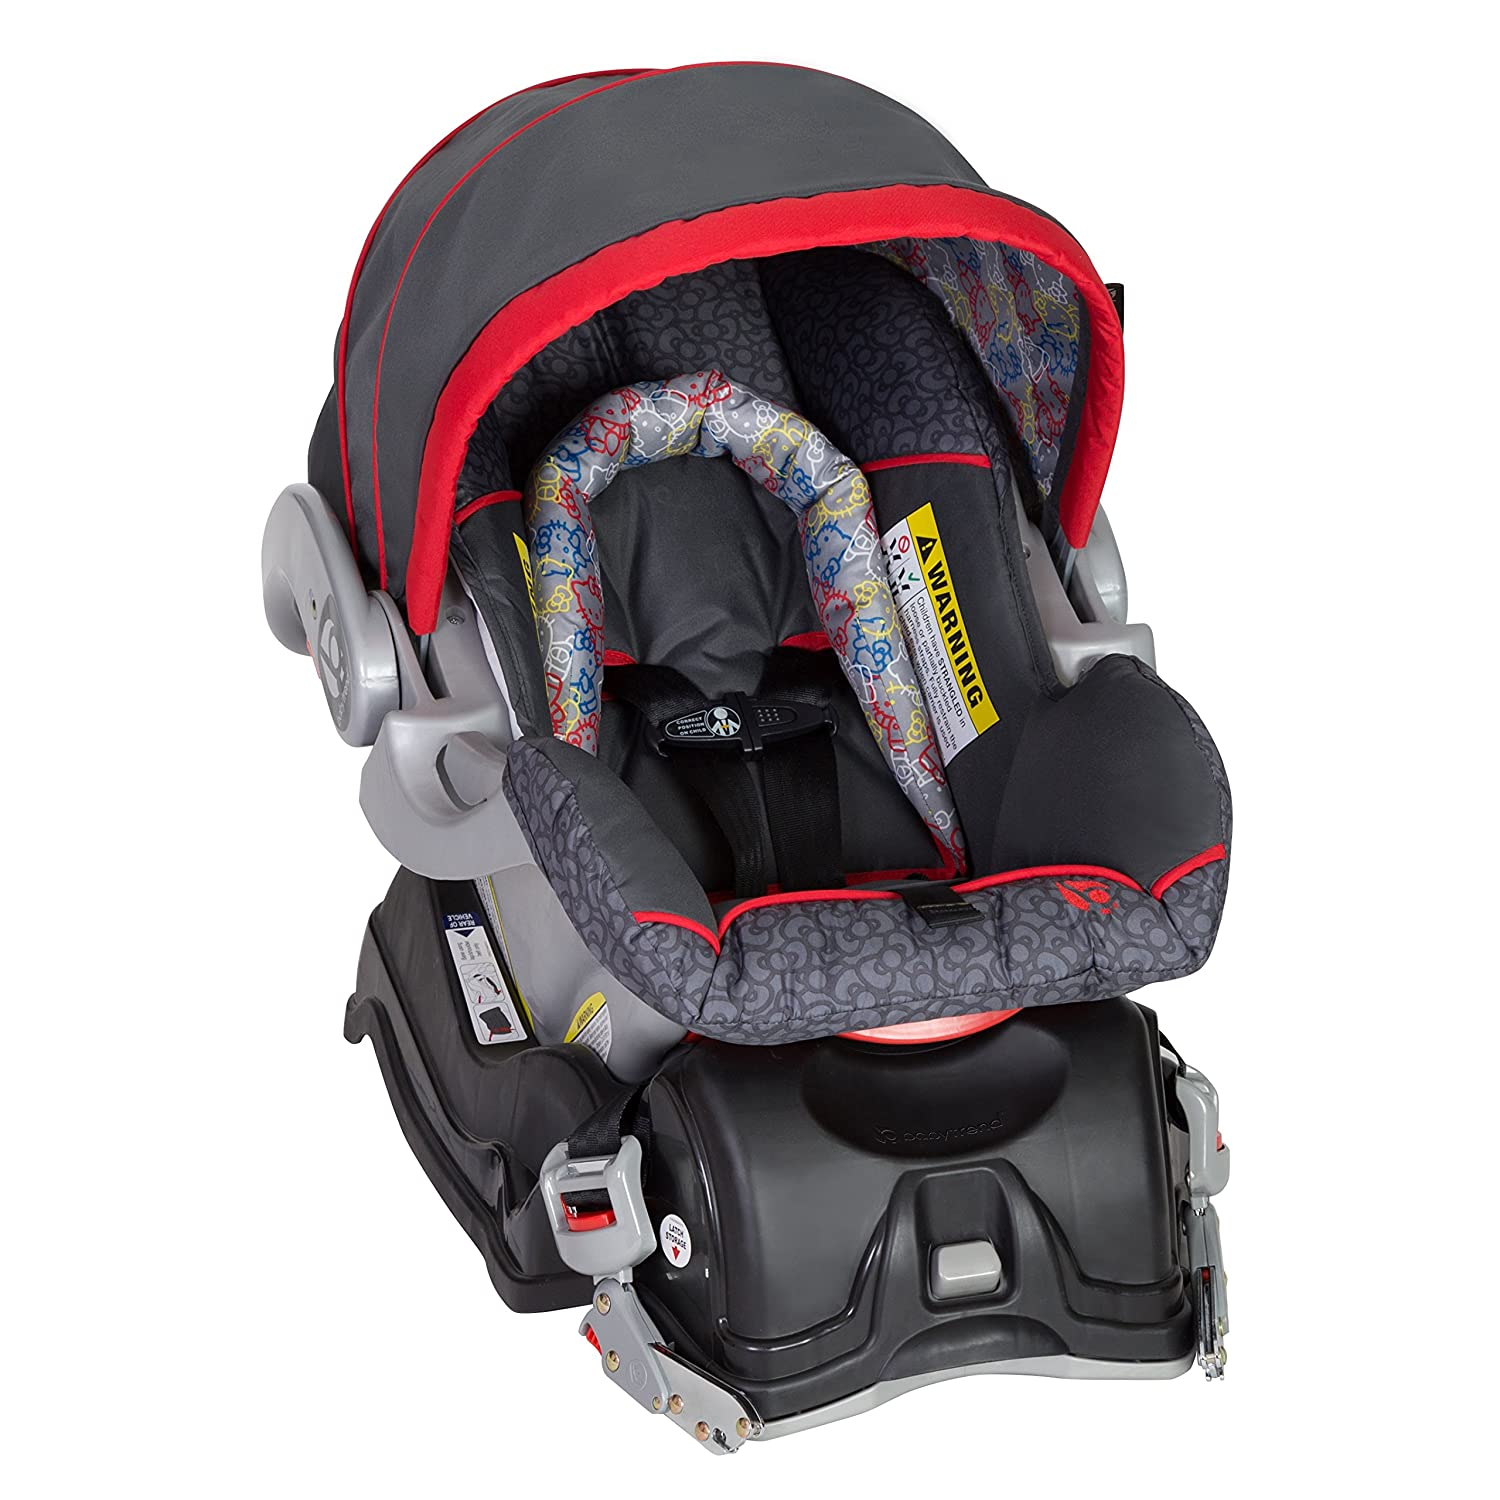 Paisley Baby Trend EZ Ride 5 Travel System